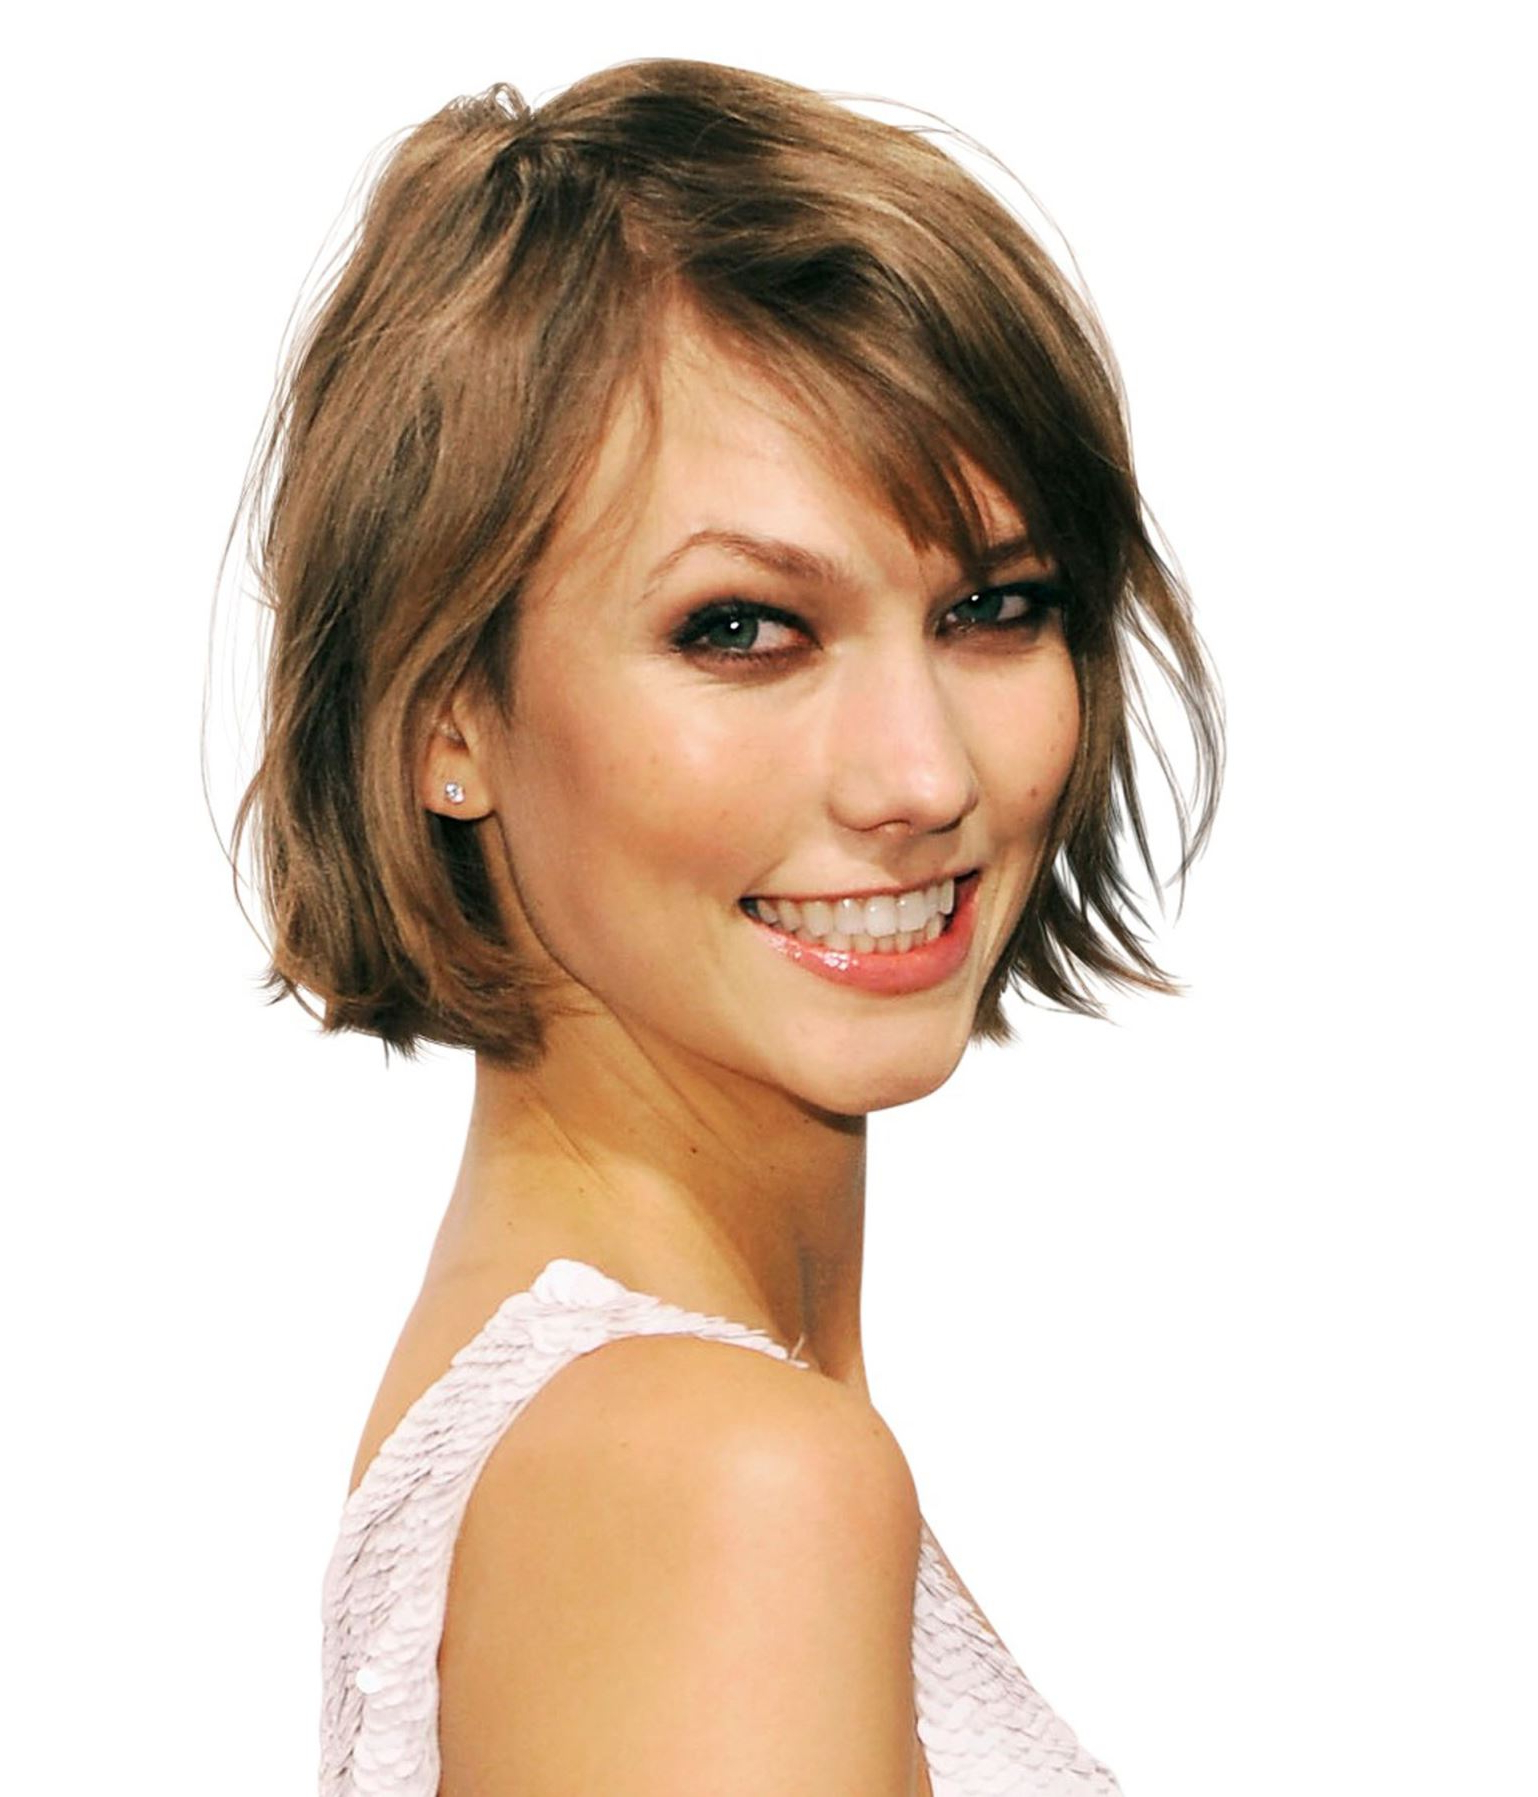 Interesting Short Bob Hairstyles For Fine Straight Hair For Your Intended For Karlie Kloss Short Haircuts (View 21 of 25)